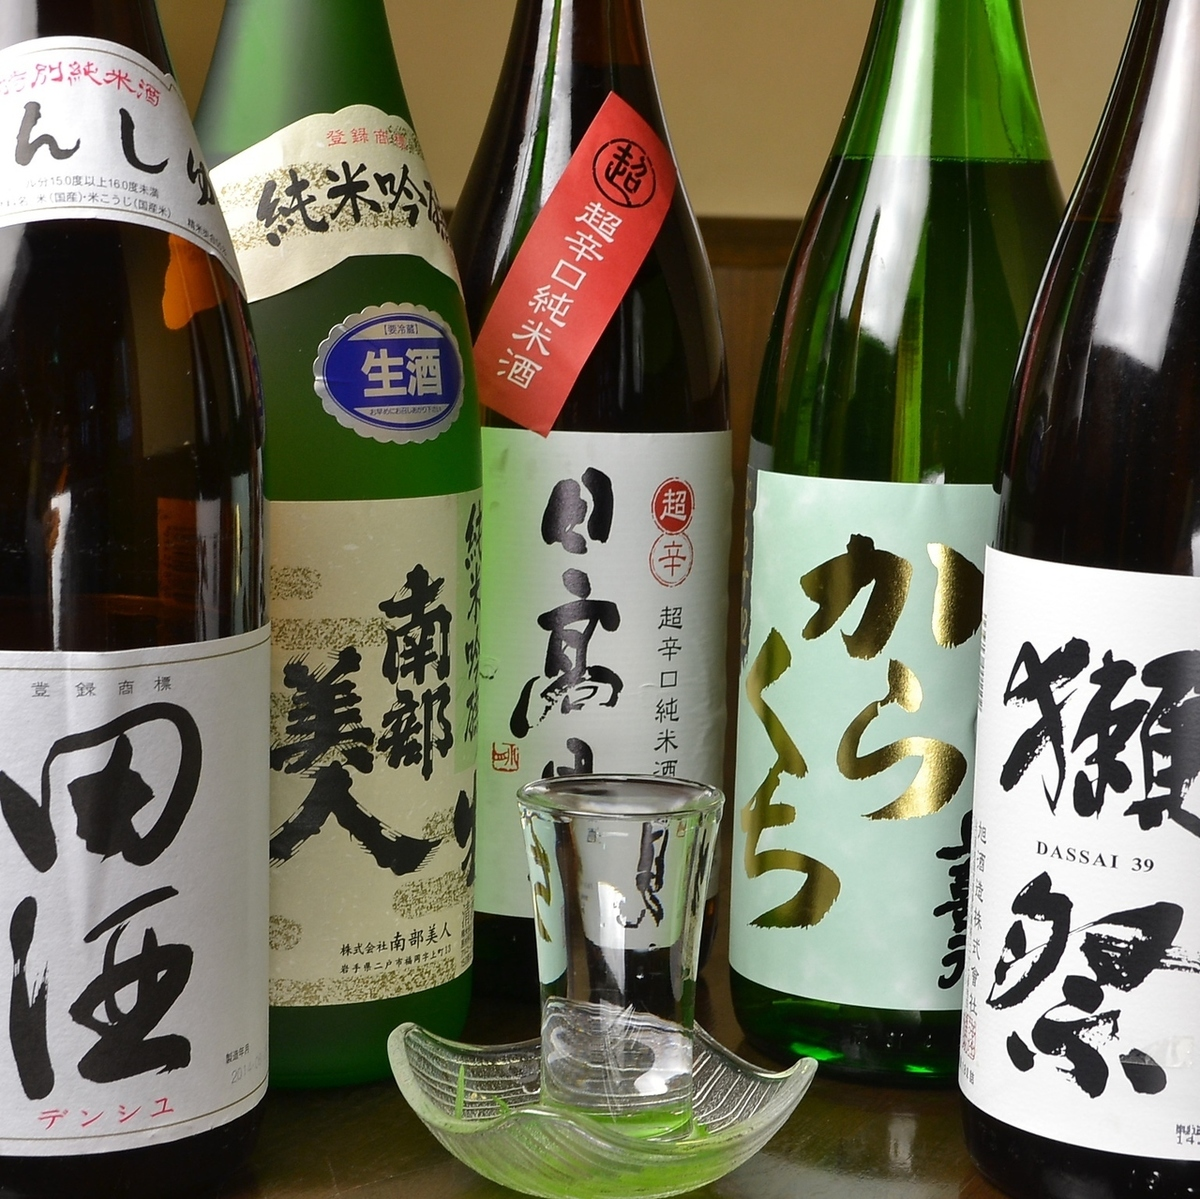 Nationwide special premium alcoholic beverages in Minshuku